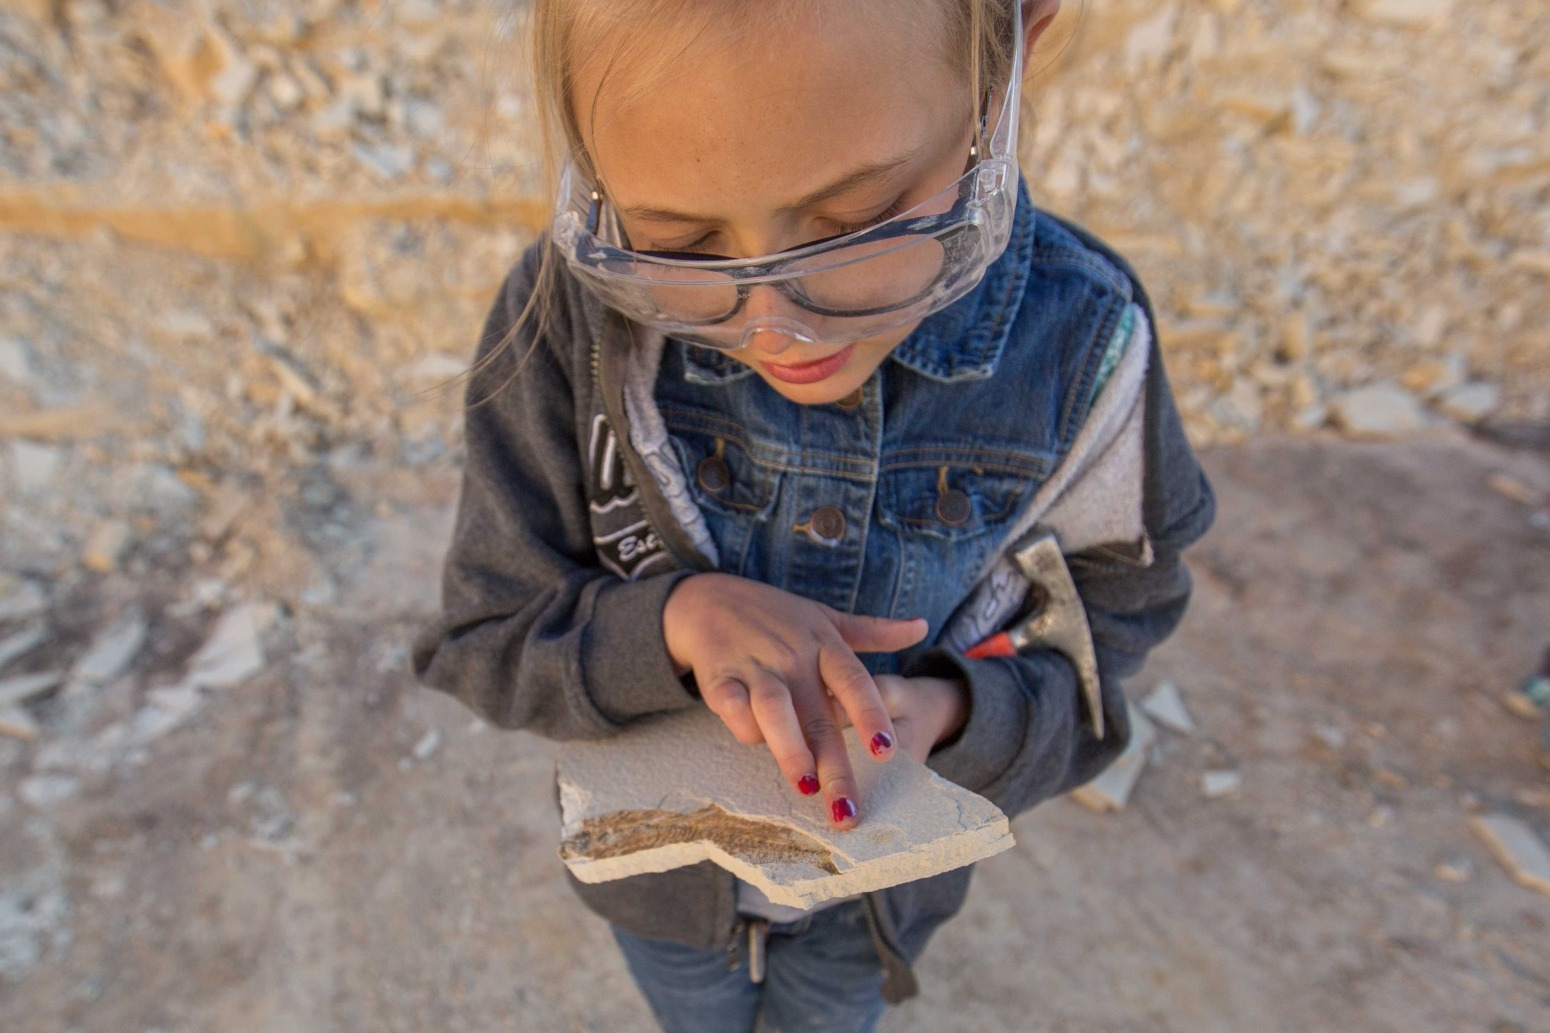 A girl examines a fossil against a background of loose rock.